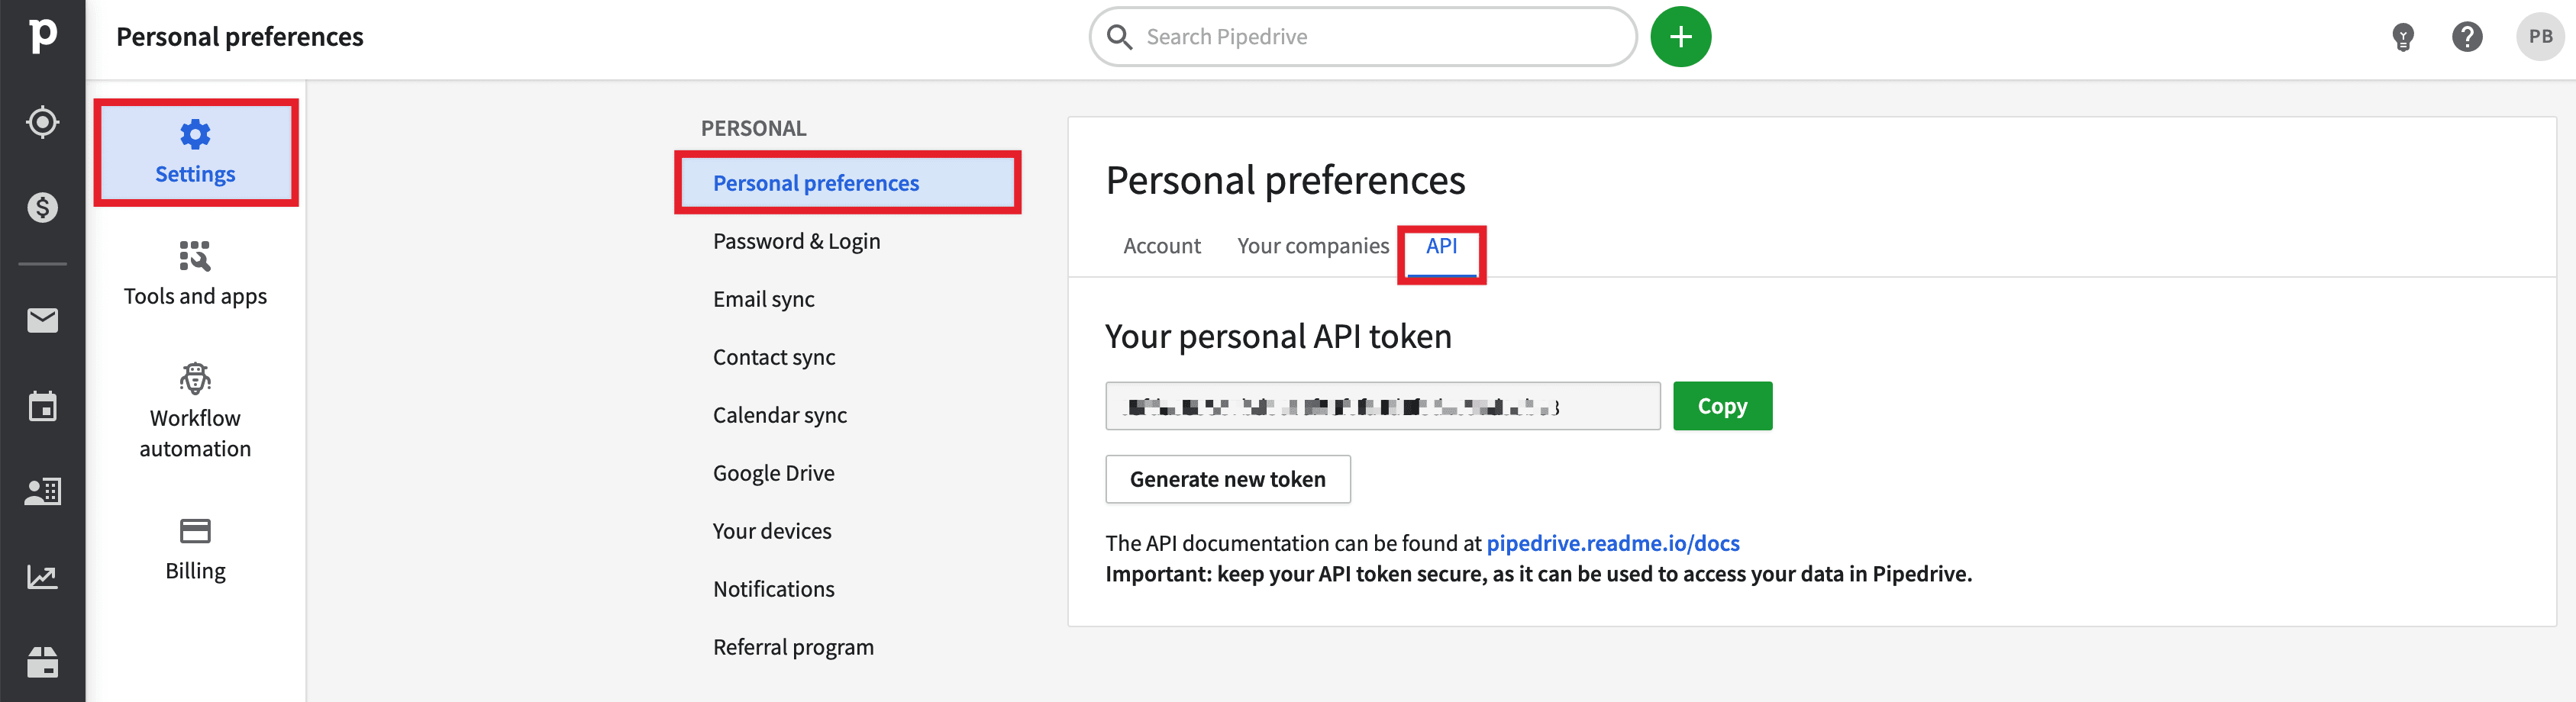 Disclaimer: Never disclose your real API token!